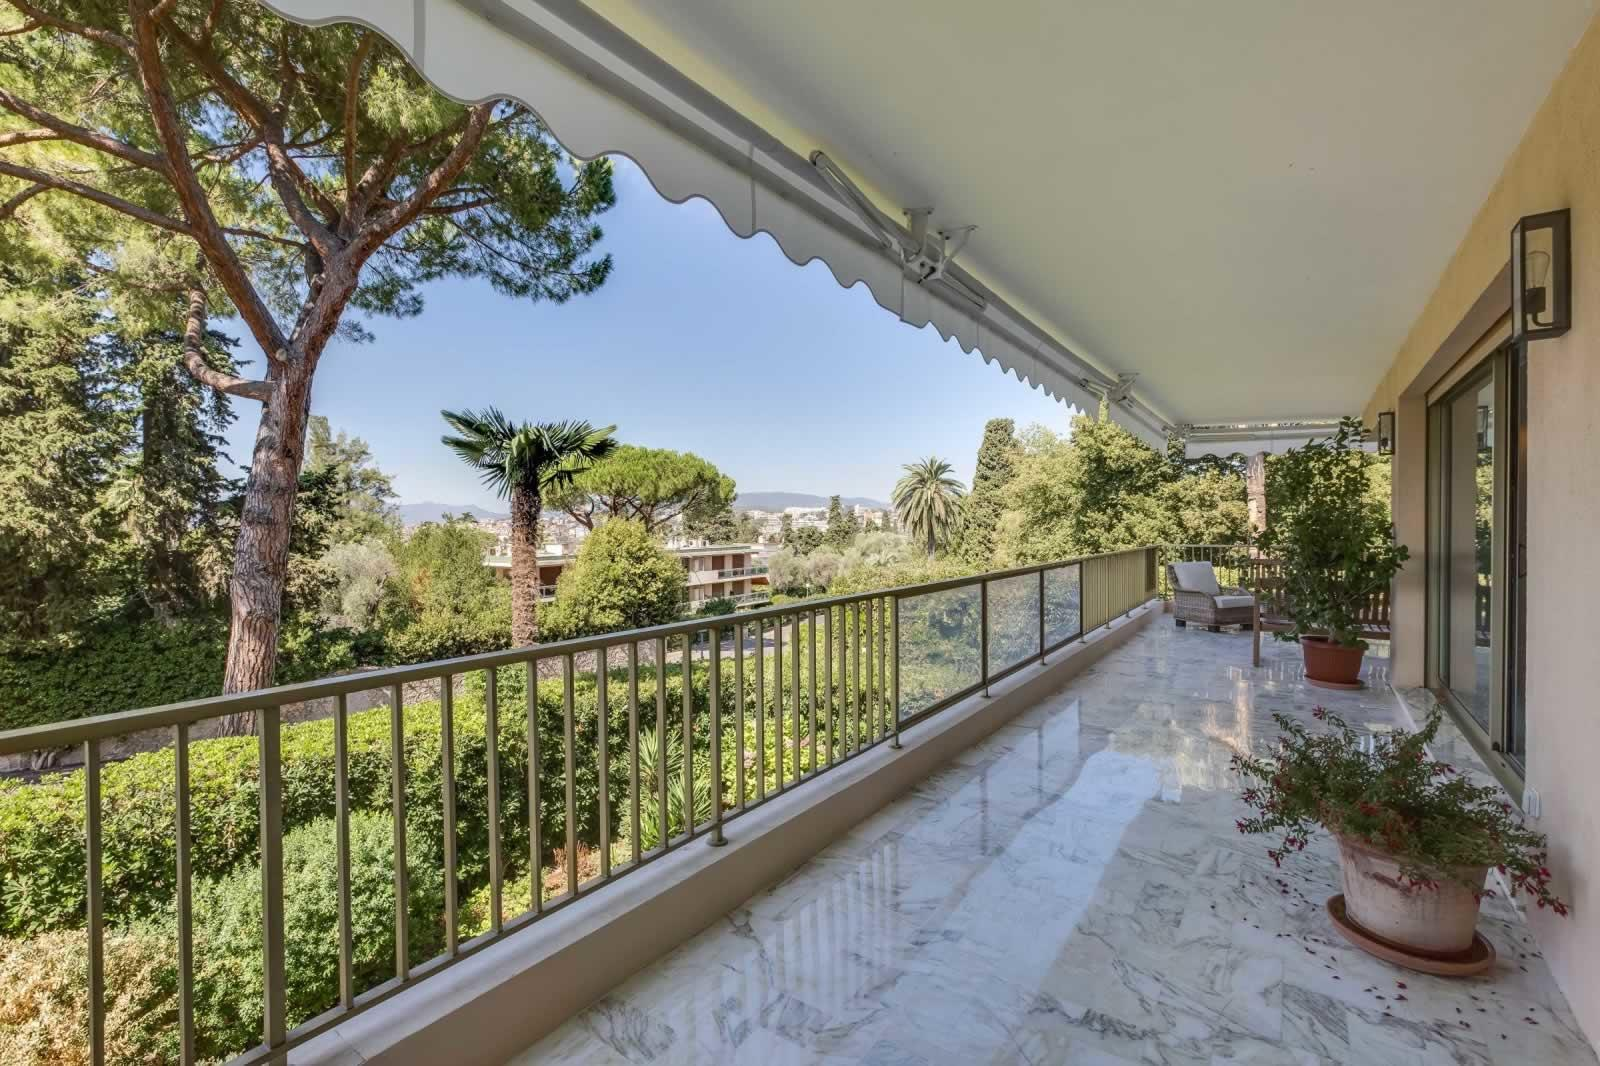 tres-bel-appartement-a-vendre-quartier-residentiel-parc-fiorentina-grand-standing-securisee-terrasse-garage-cave